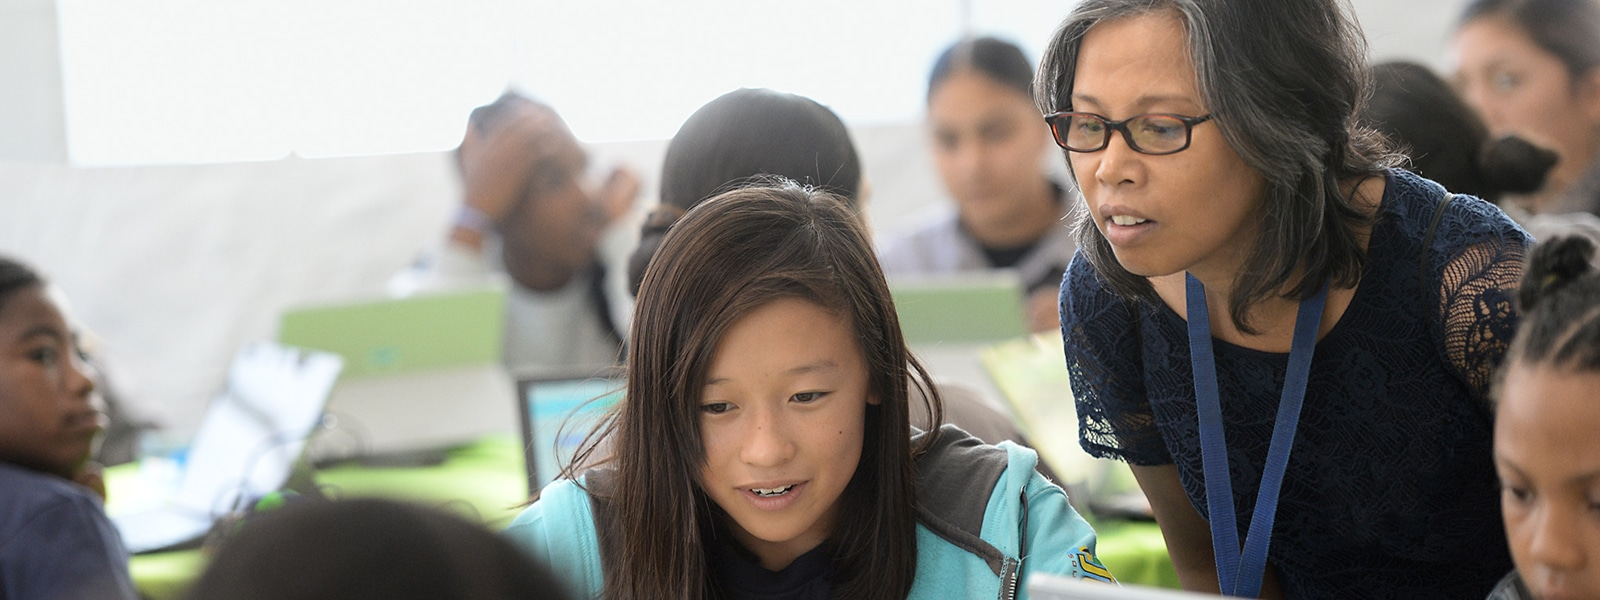 A teacher leans in to help a student working on a Microsoft Surface tablet.